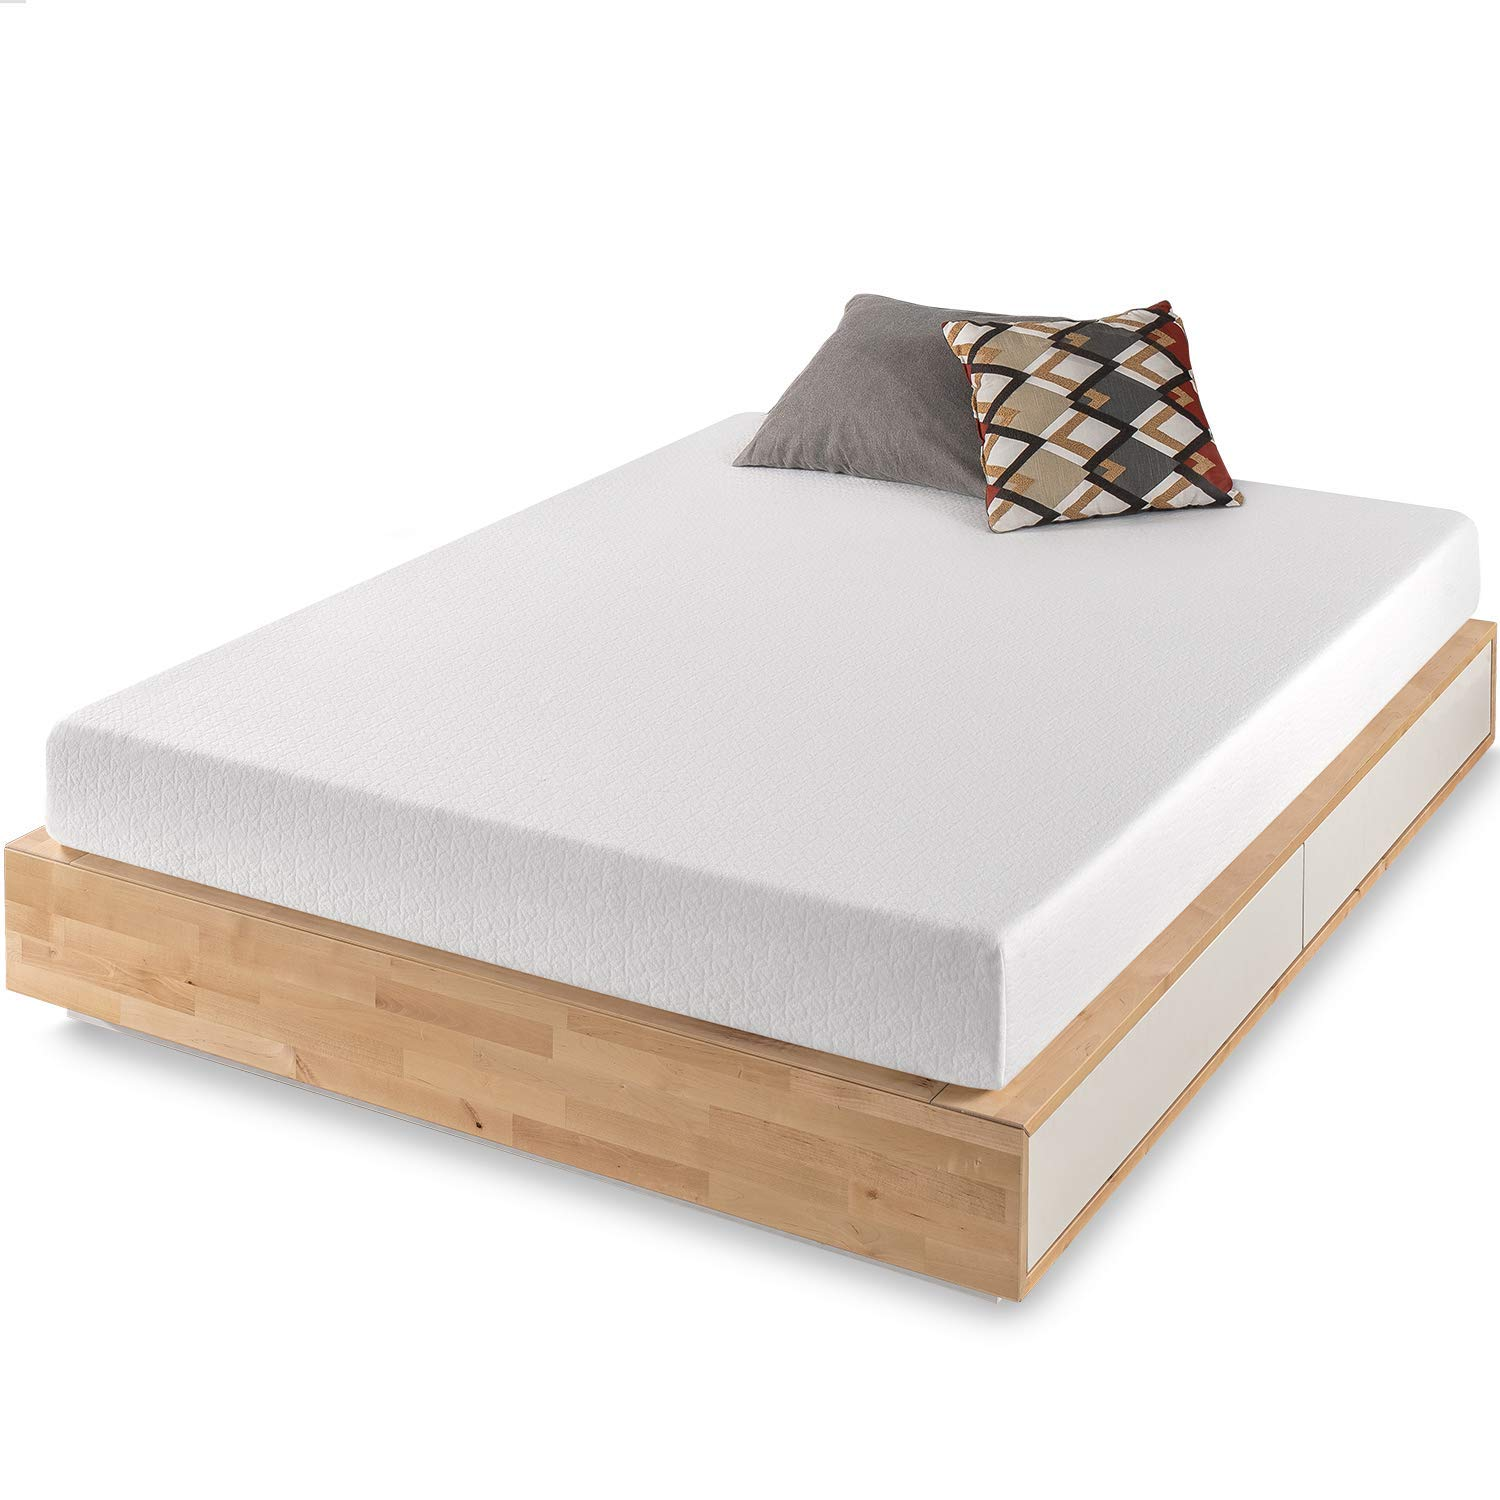 The Best Firm Mattress Brands And Buying Guide For 2019